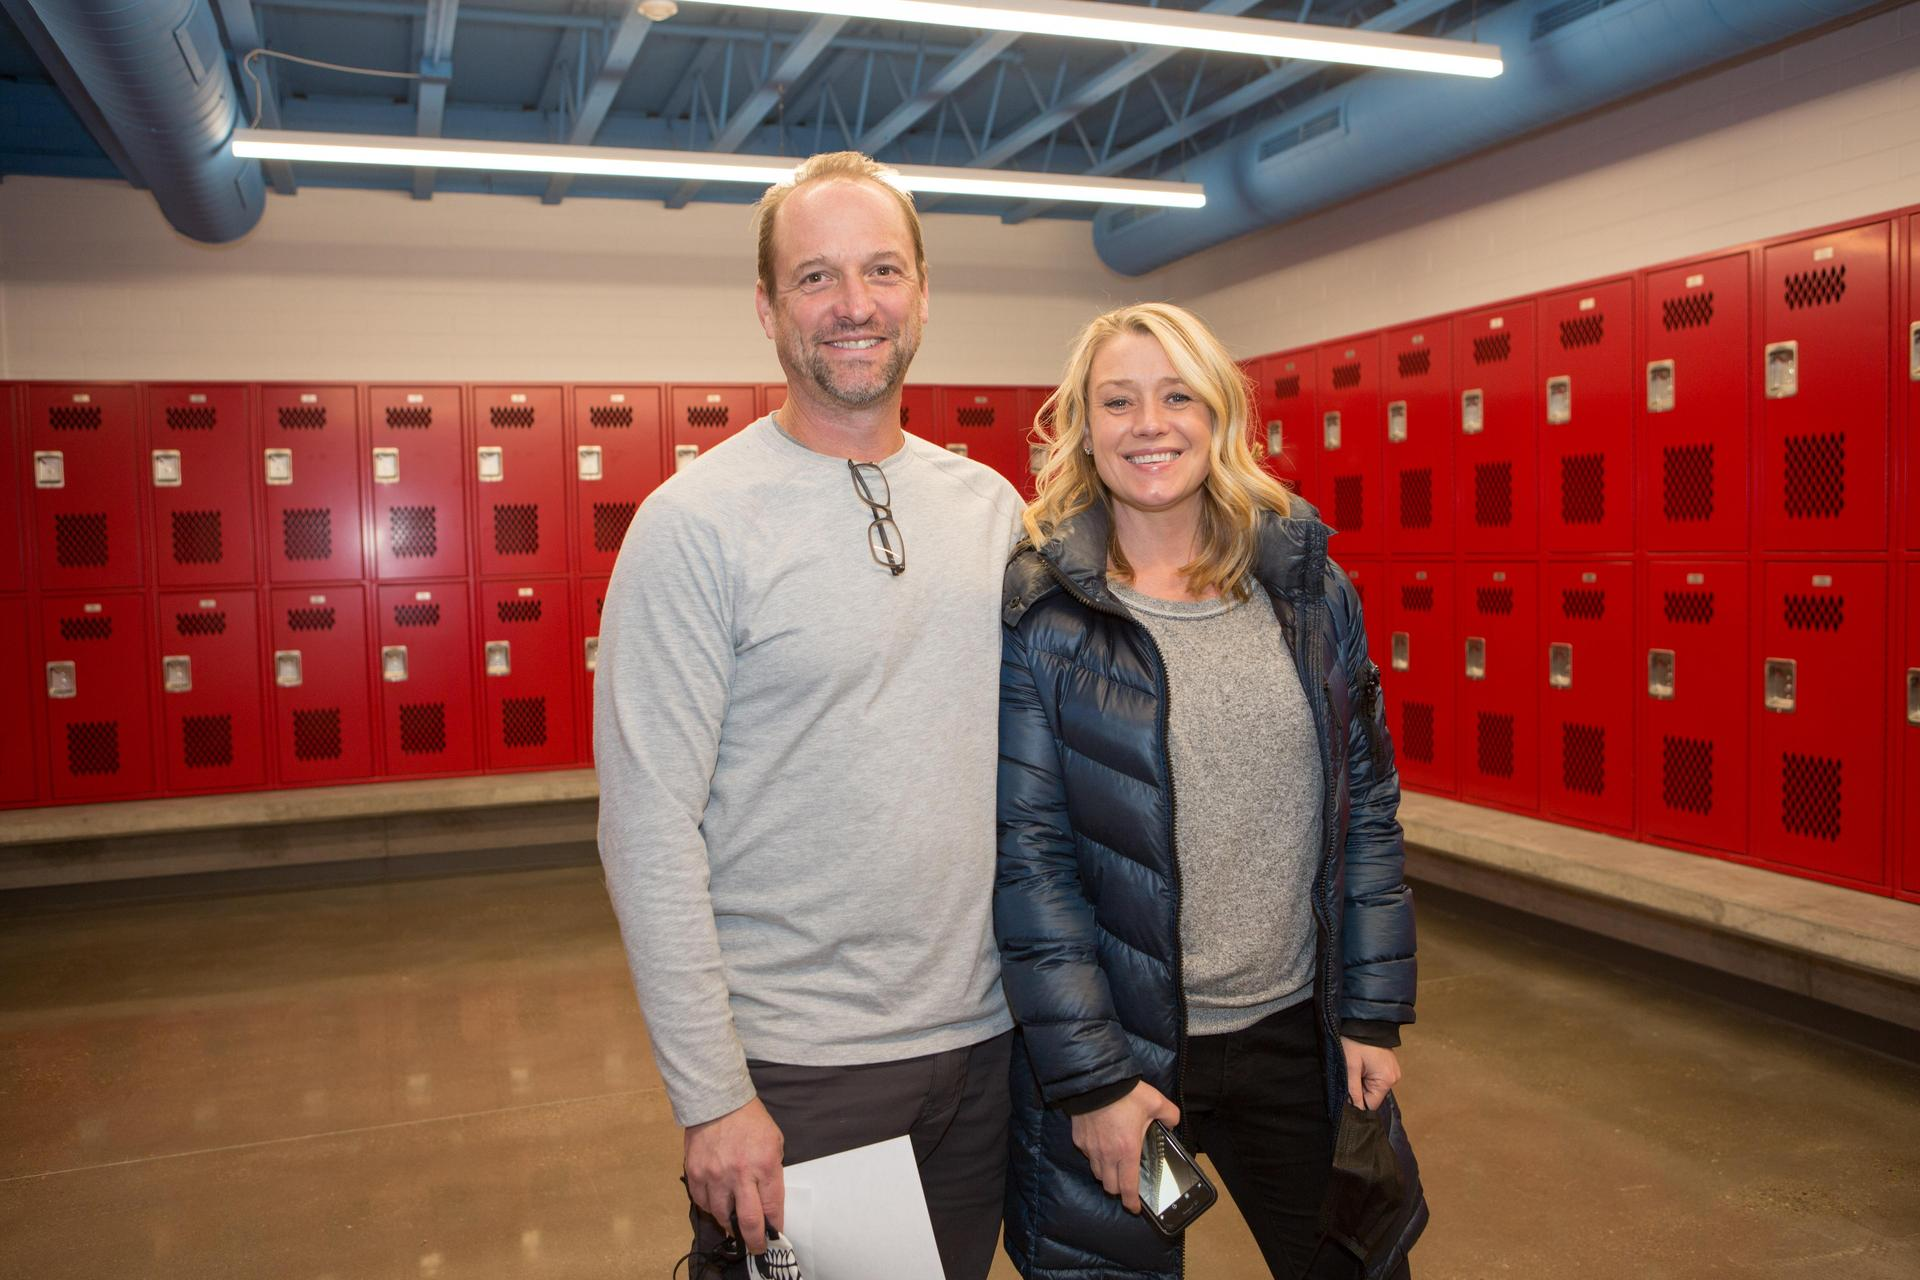 donors standing in football team room with red lockers behind